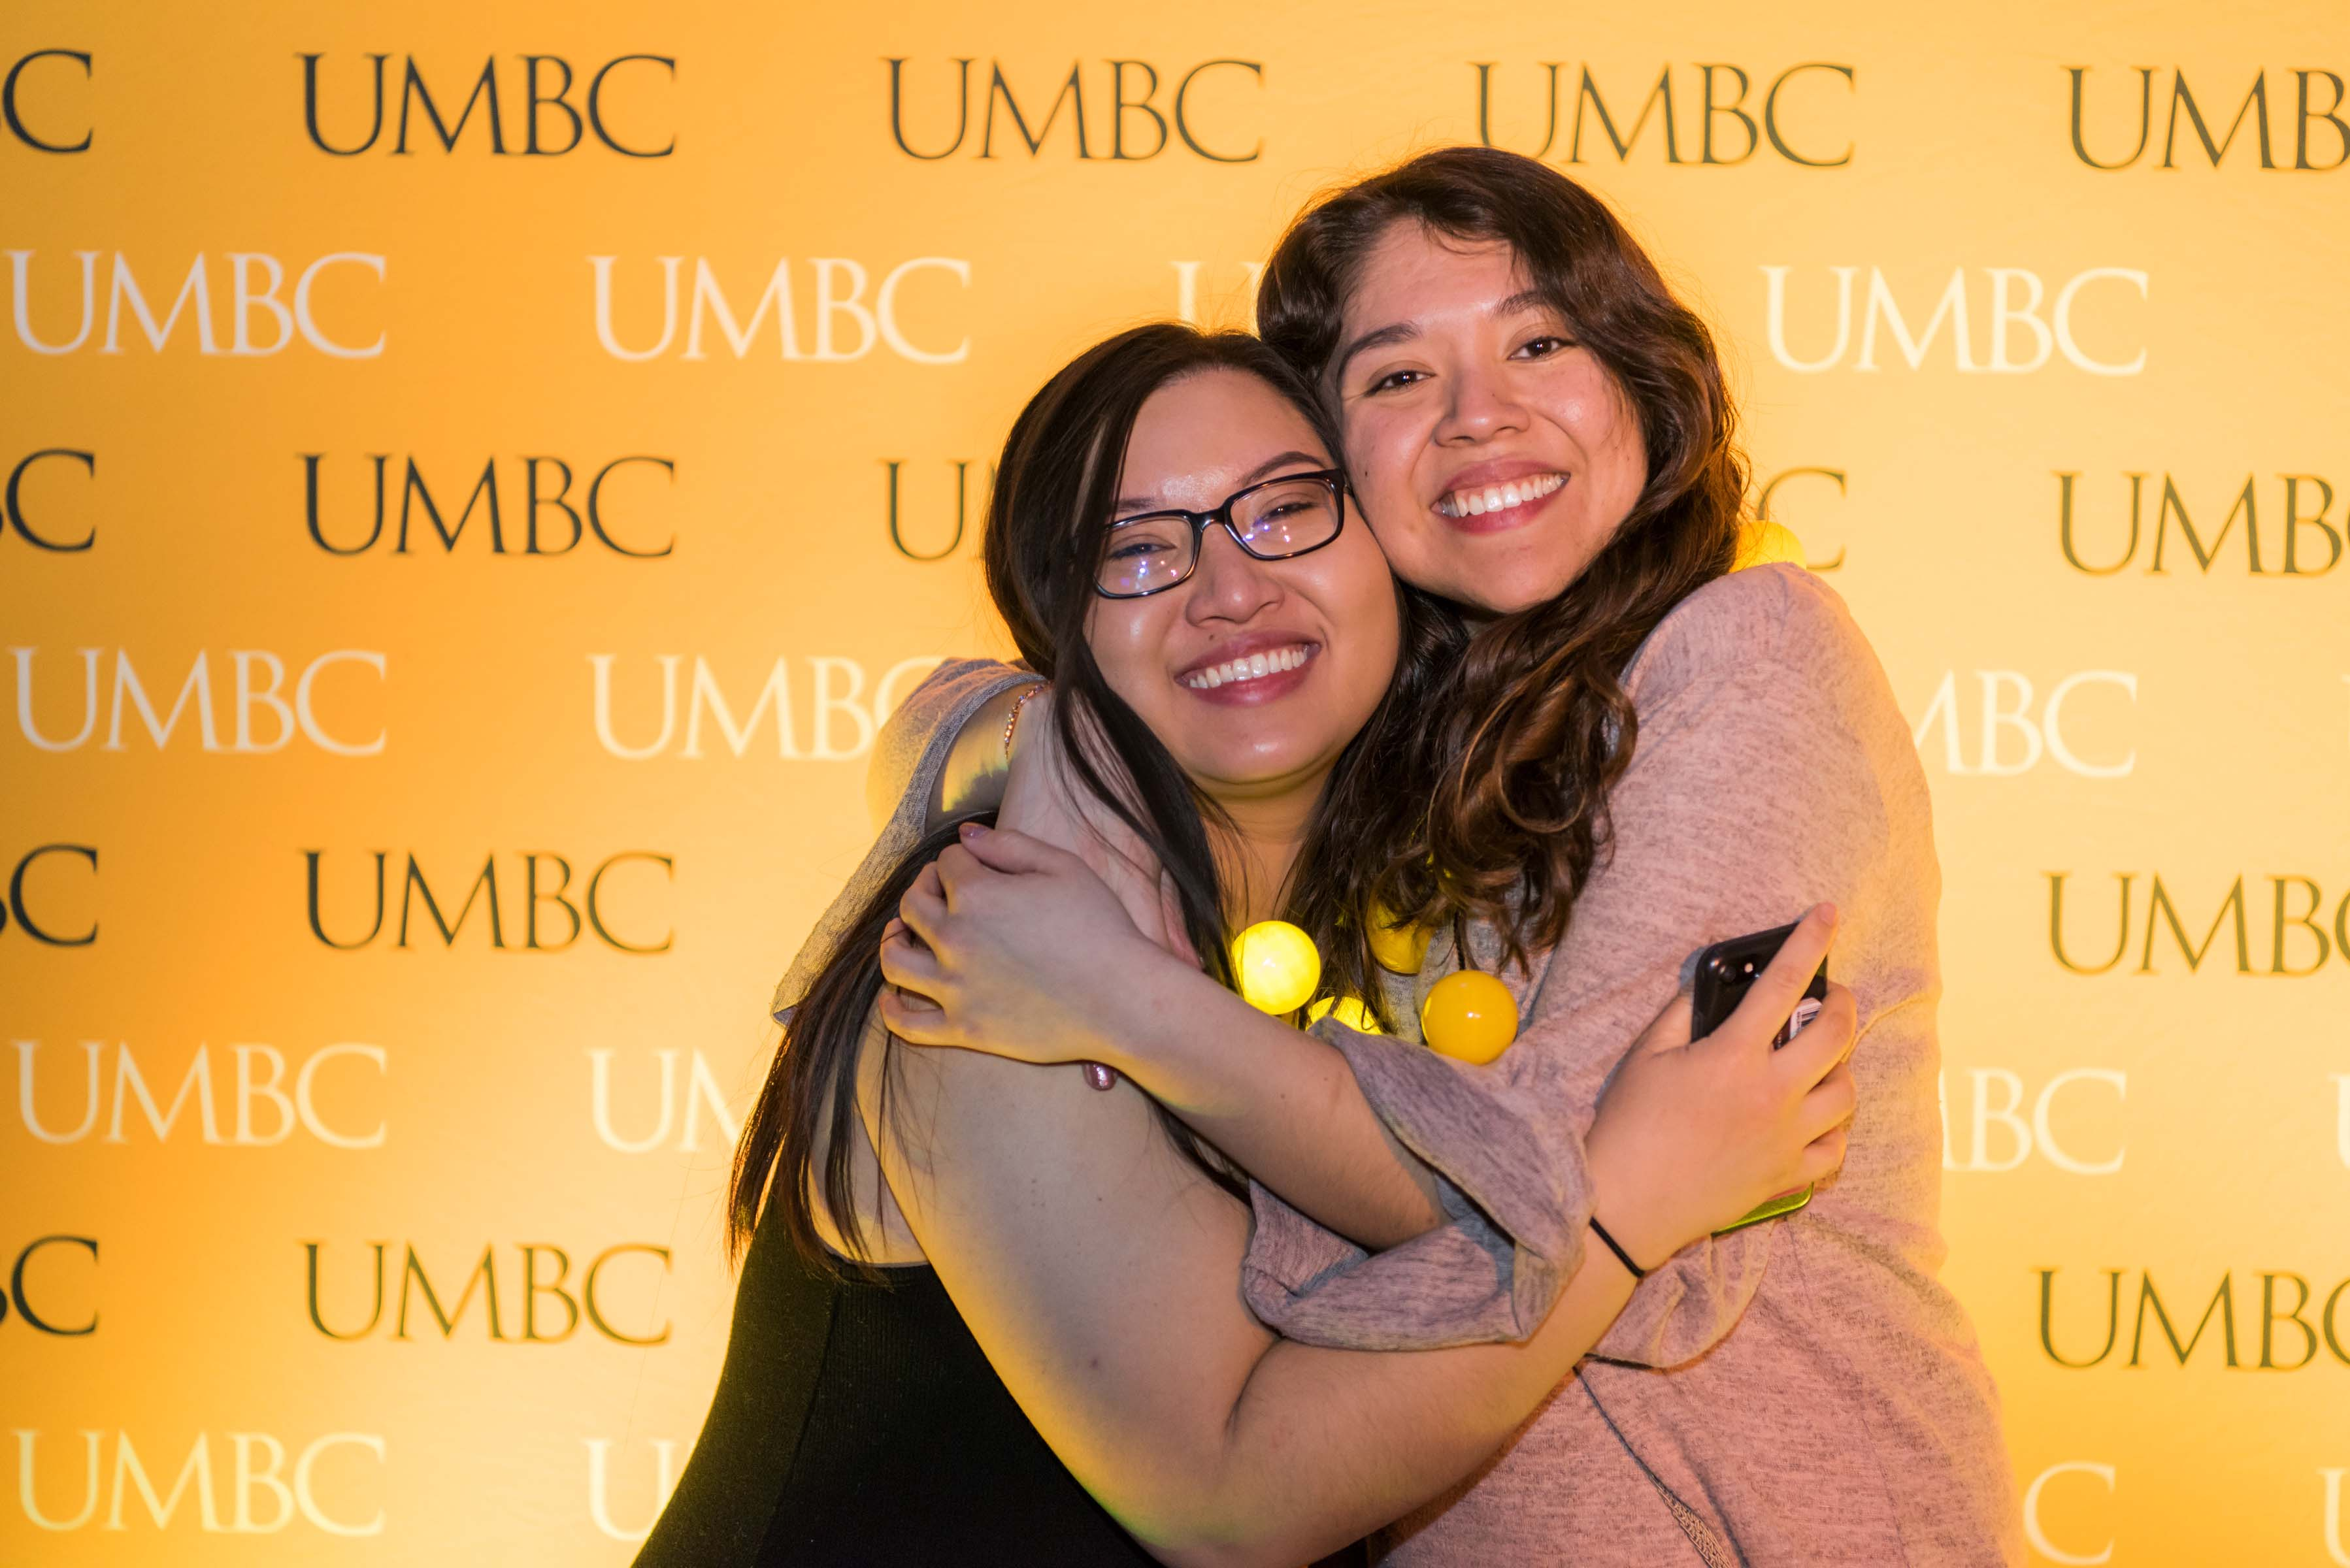 Two girls embrace in front of UMBC wall at Pier 5 reception